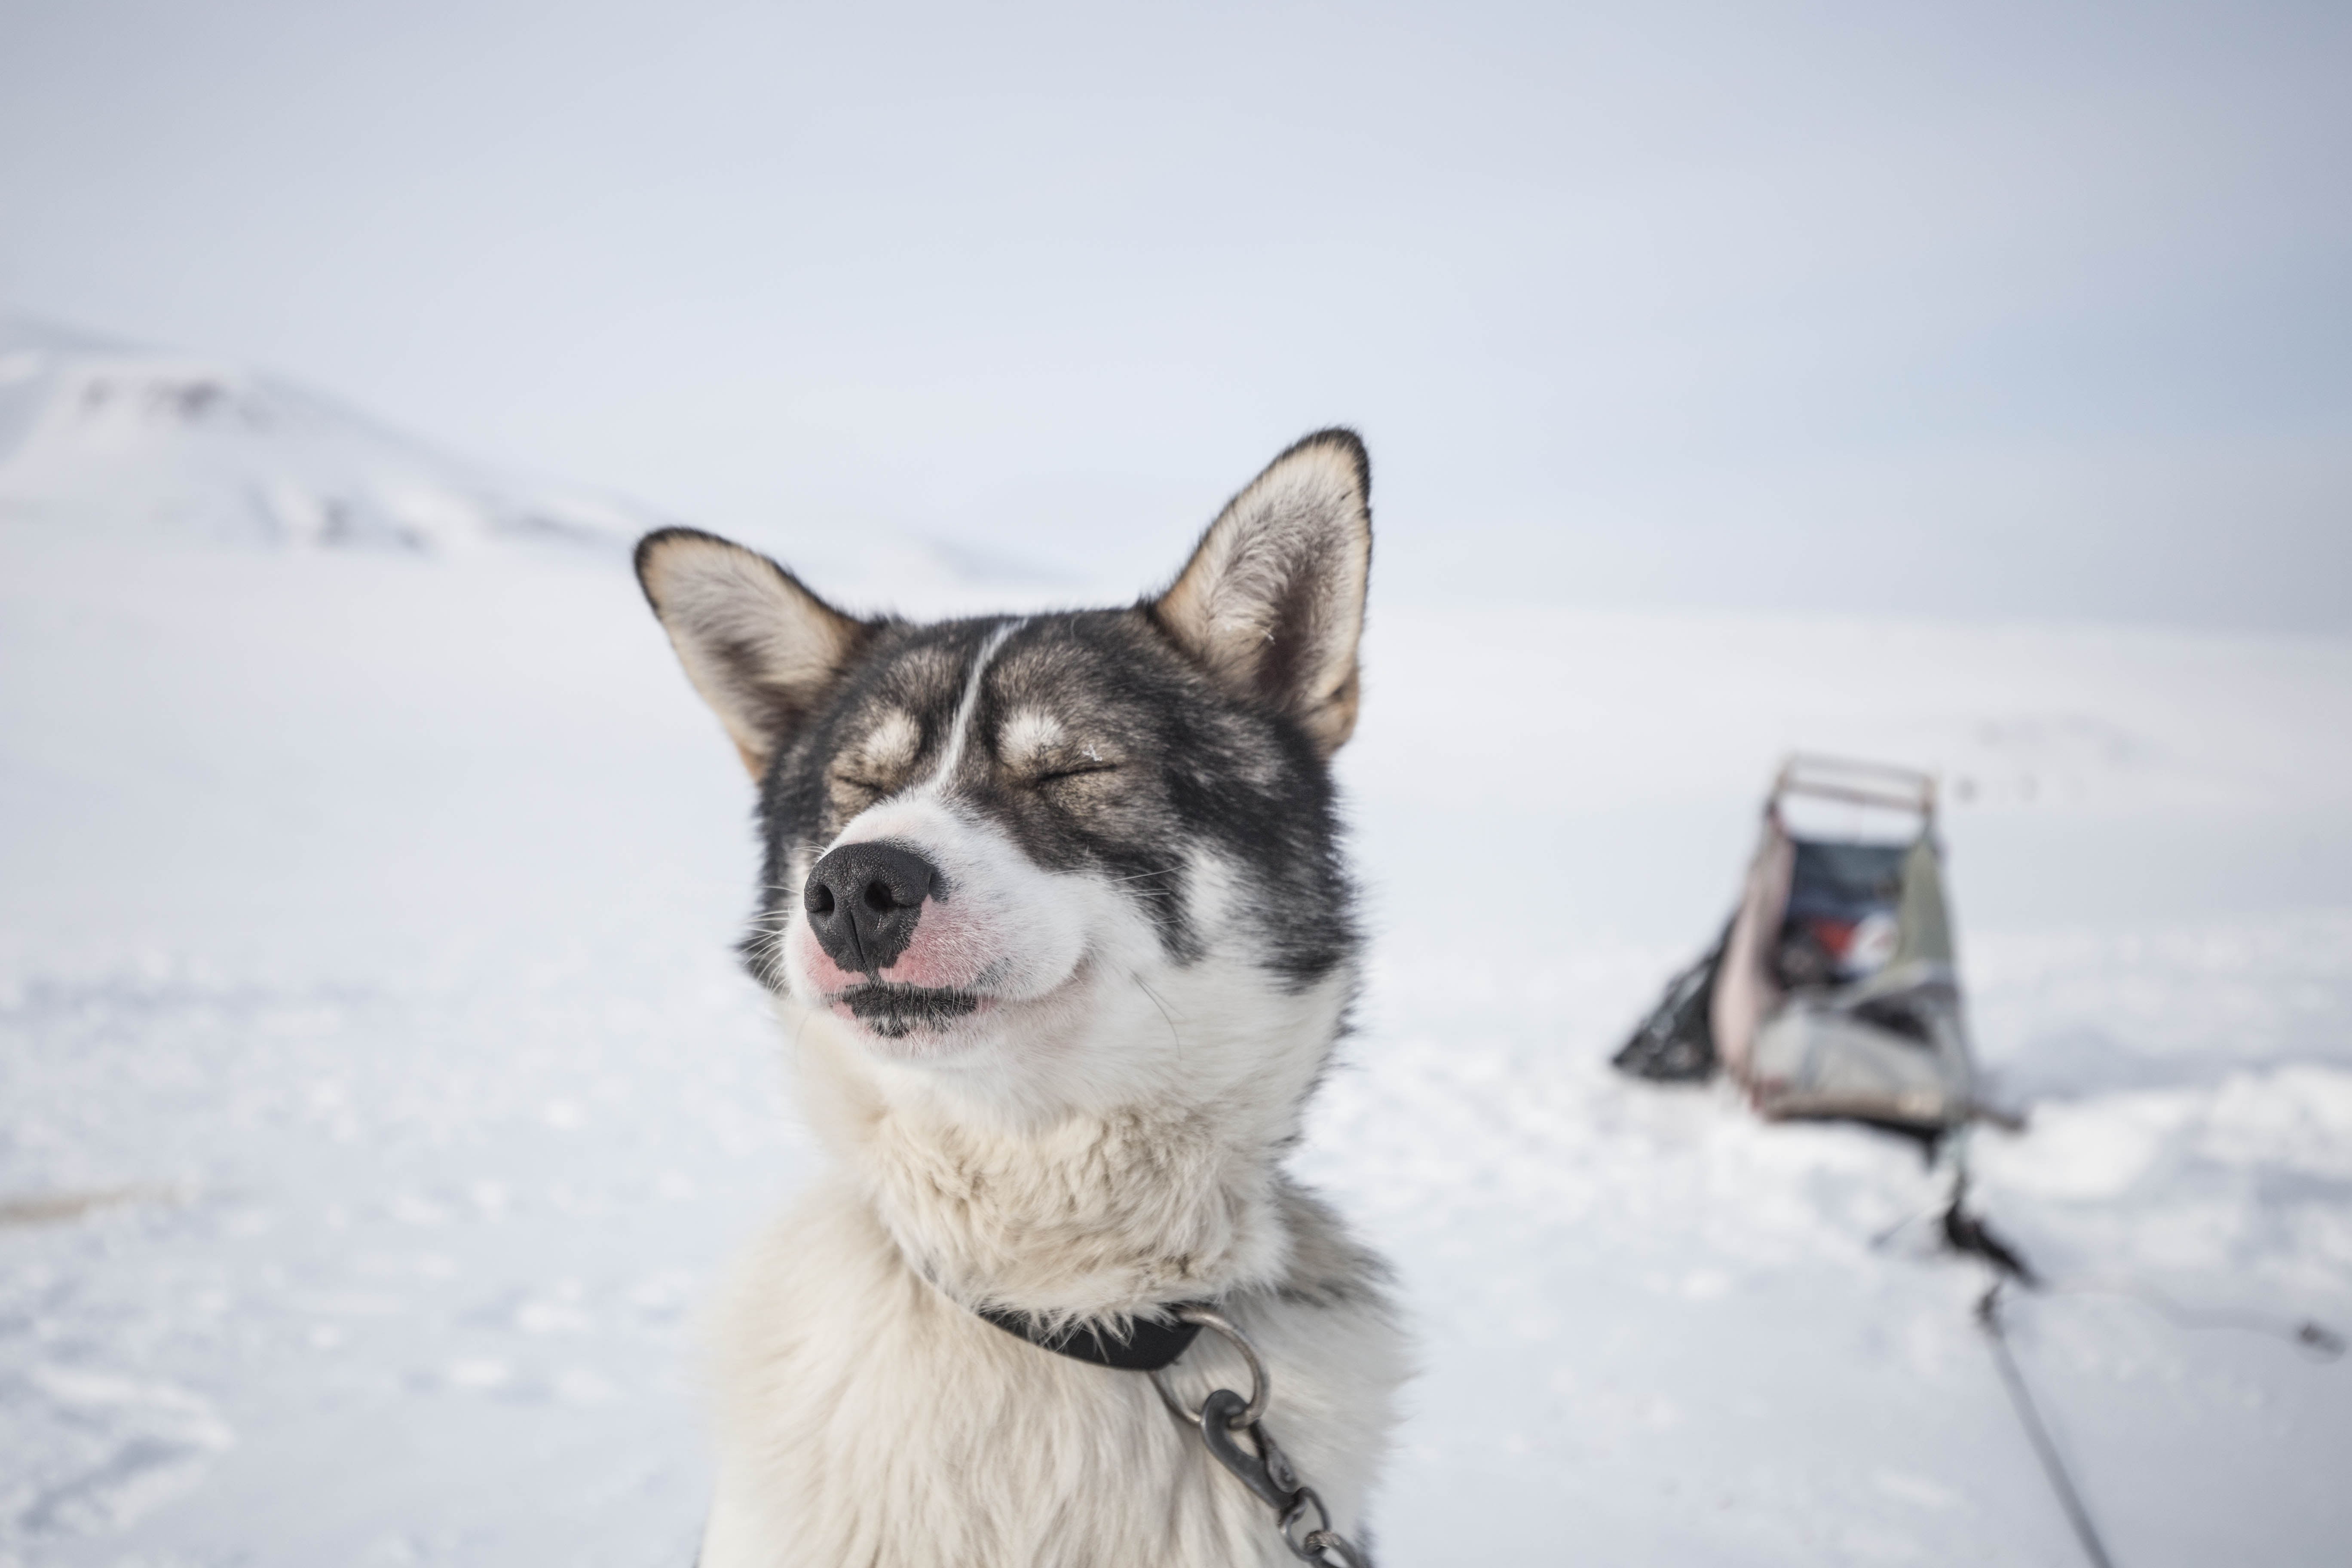 white and black dog with leash sitting on snowfield at daytime